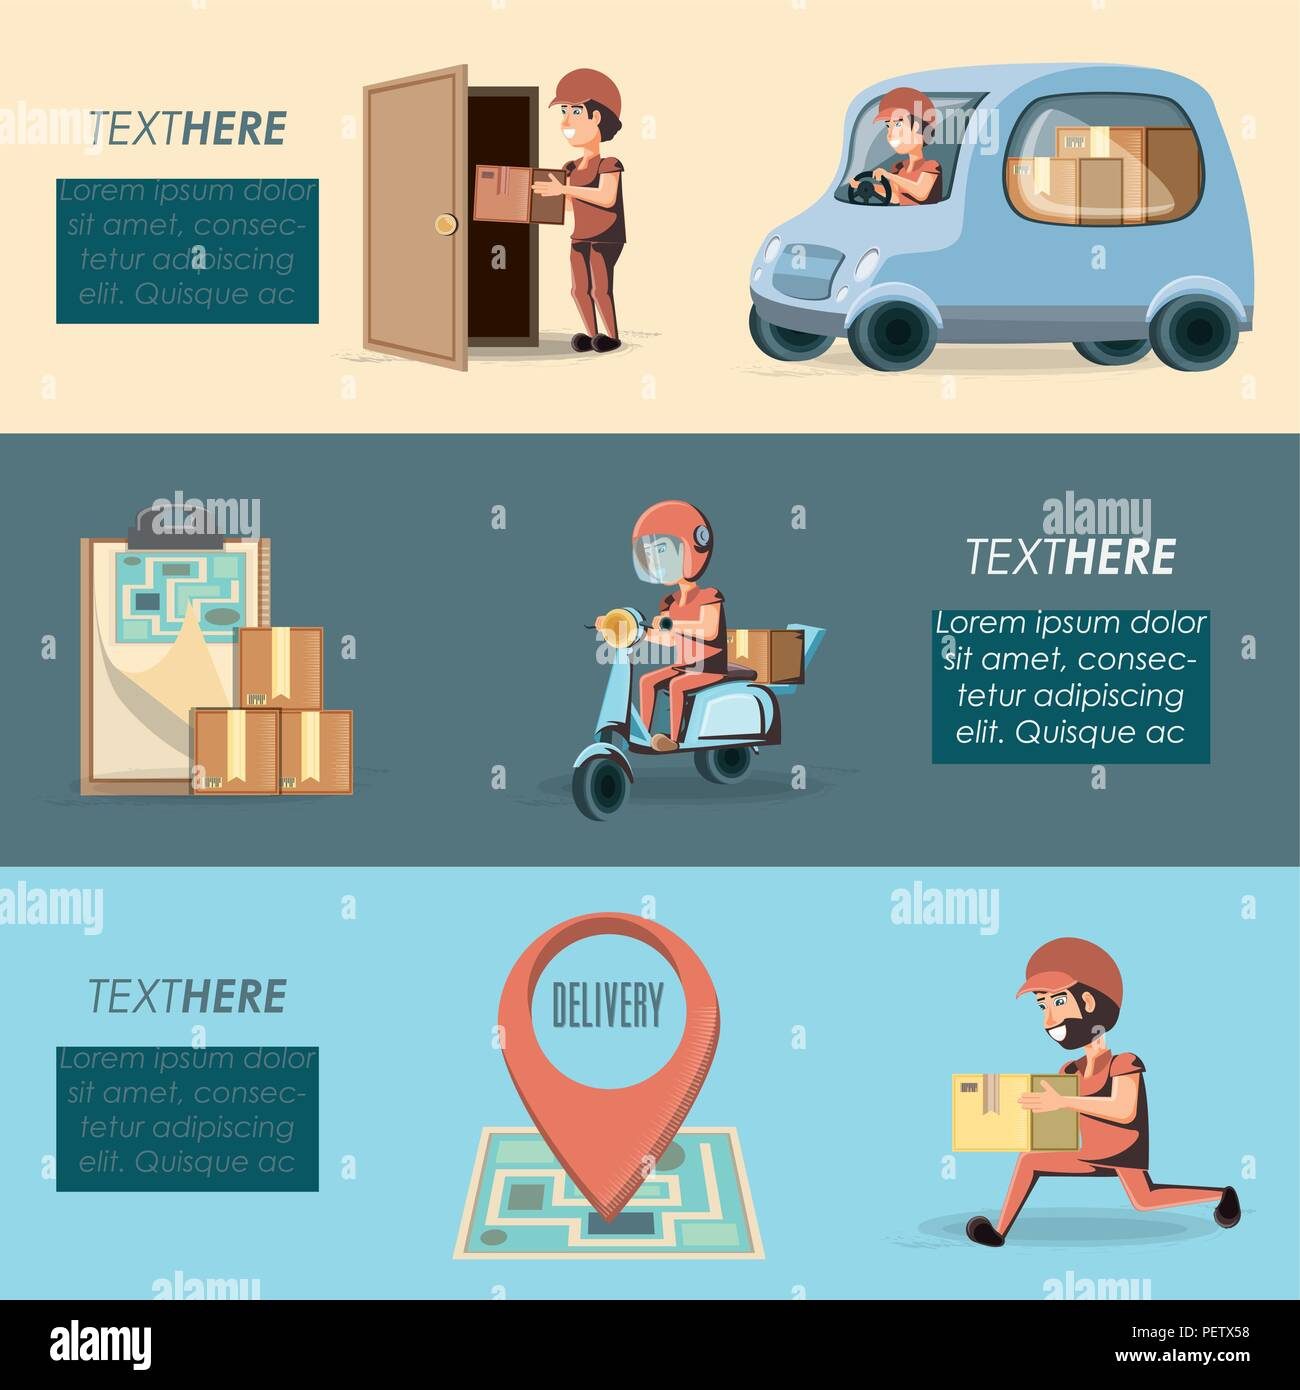 couriers delivery service characters vector illustration design - Stock Image